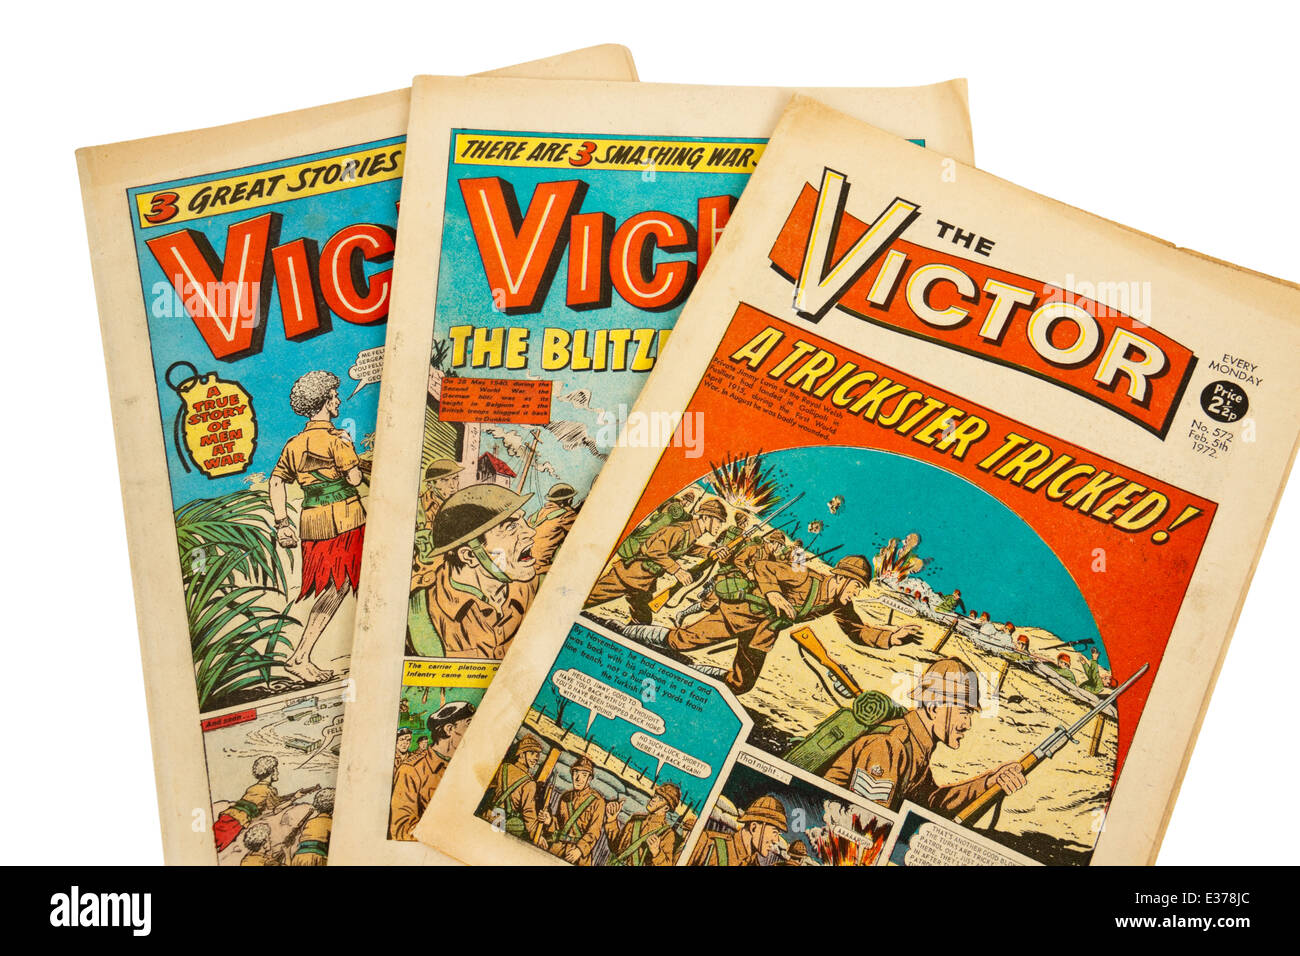 Collection of 'The Victor' comics, the popular British adventure comic from the early 1970's. - Stock Image